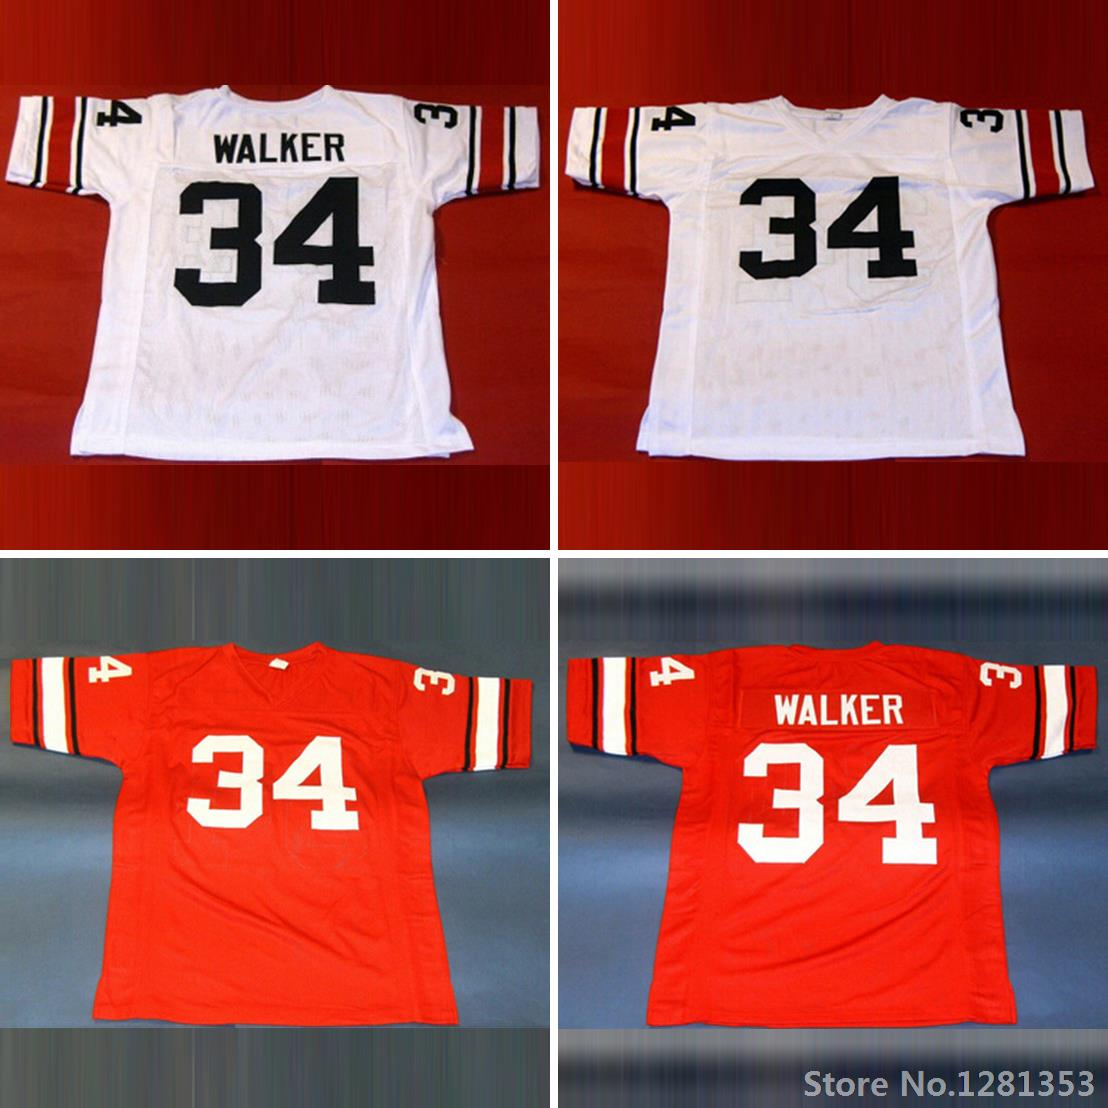 Georgia Bulldogs 34 Herschel Walker Jersey,Embroidery Stitched,BEST Herschel Walker College Football Jerseys,Red White,XXS-6XL(China (Mainland))